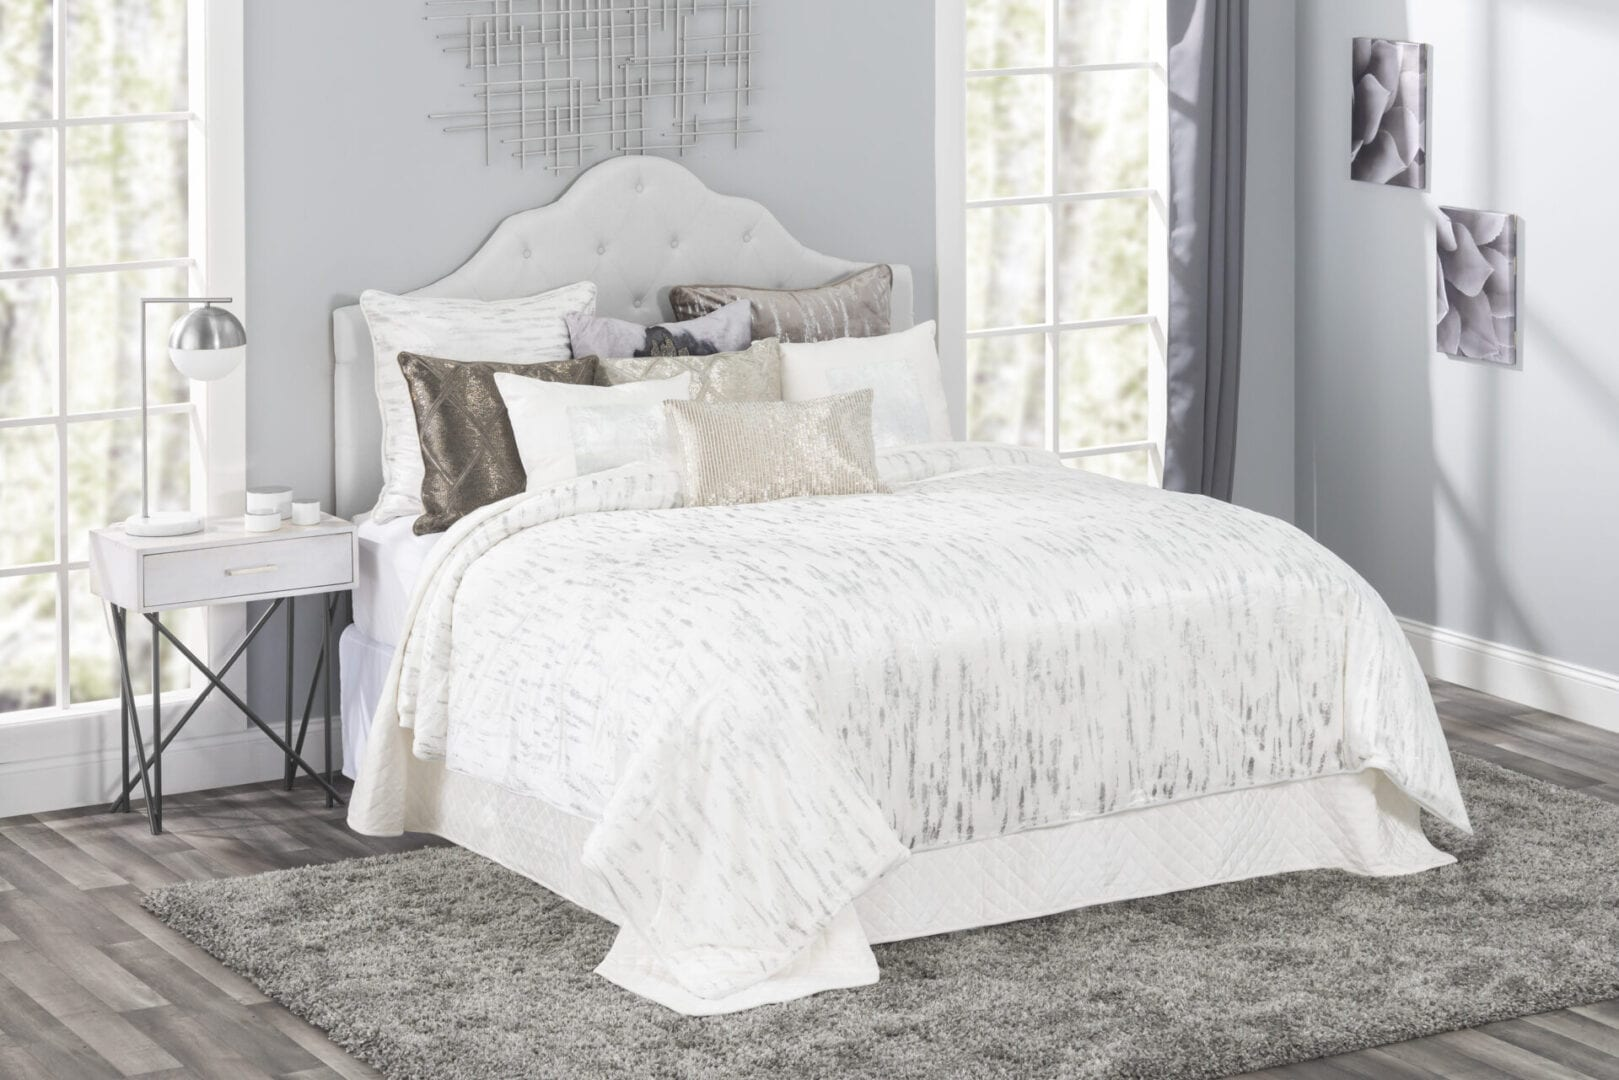 Zilar White and Silver Duvet